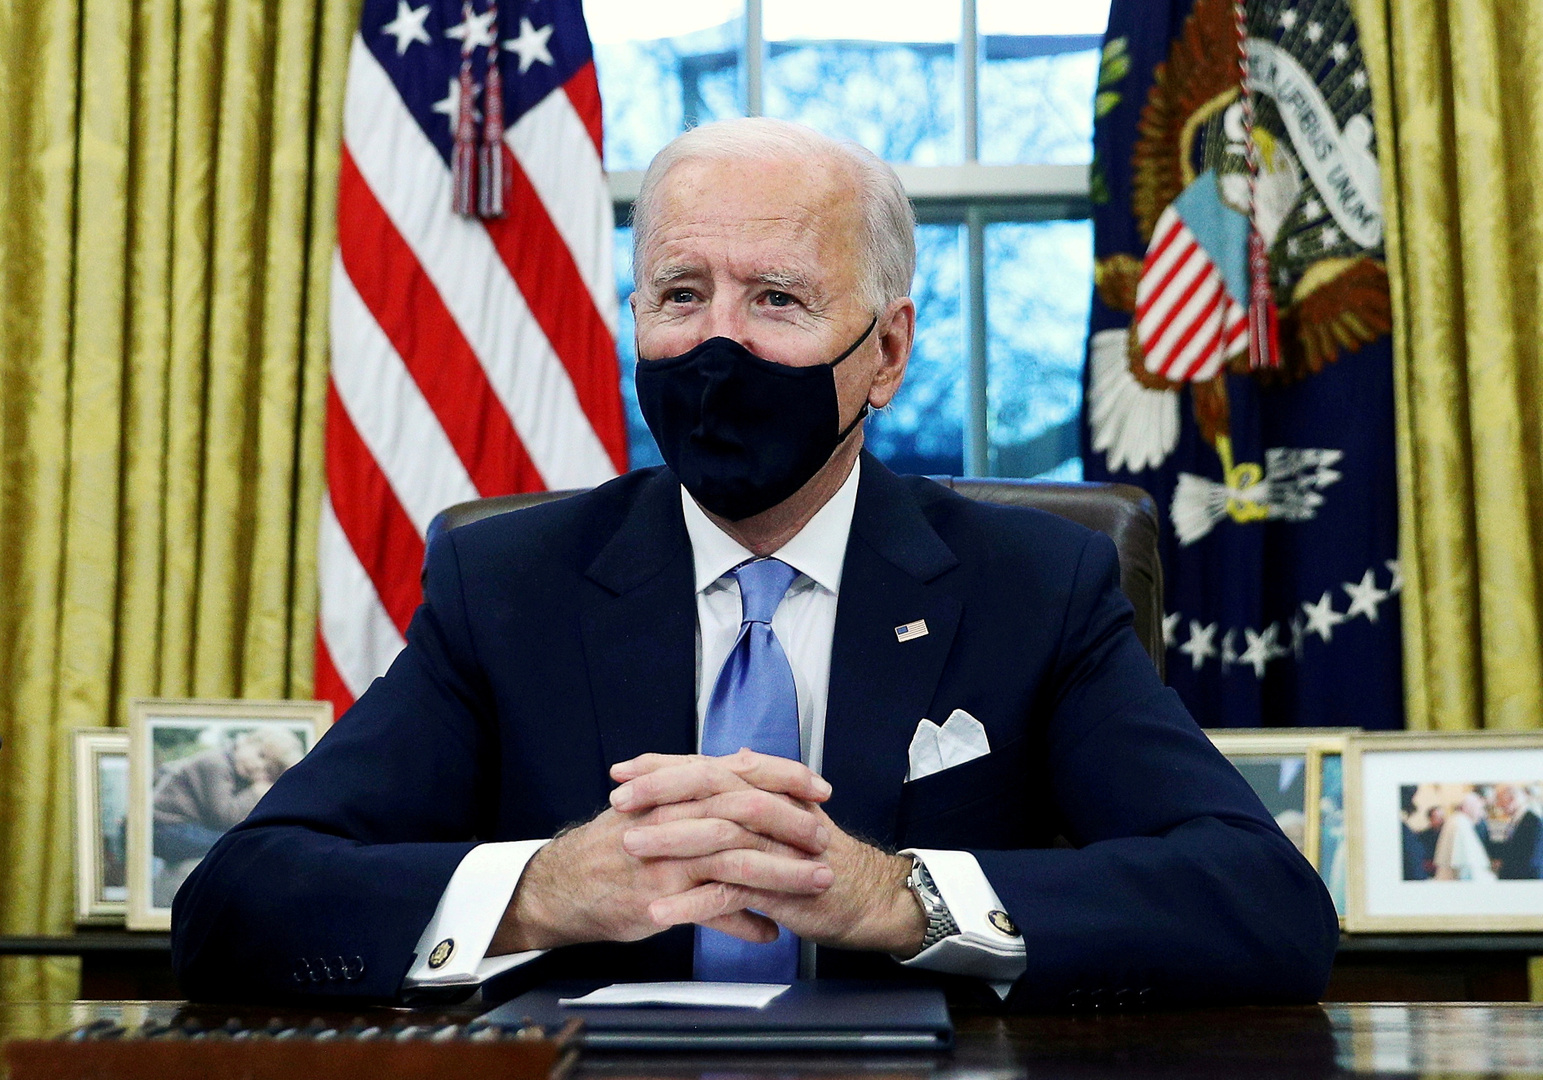 Biden renews the US commitment to the collective defense of NATO